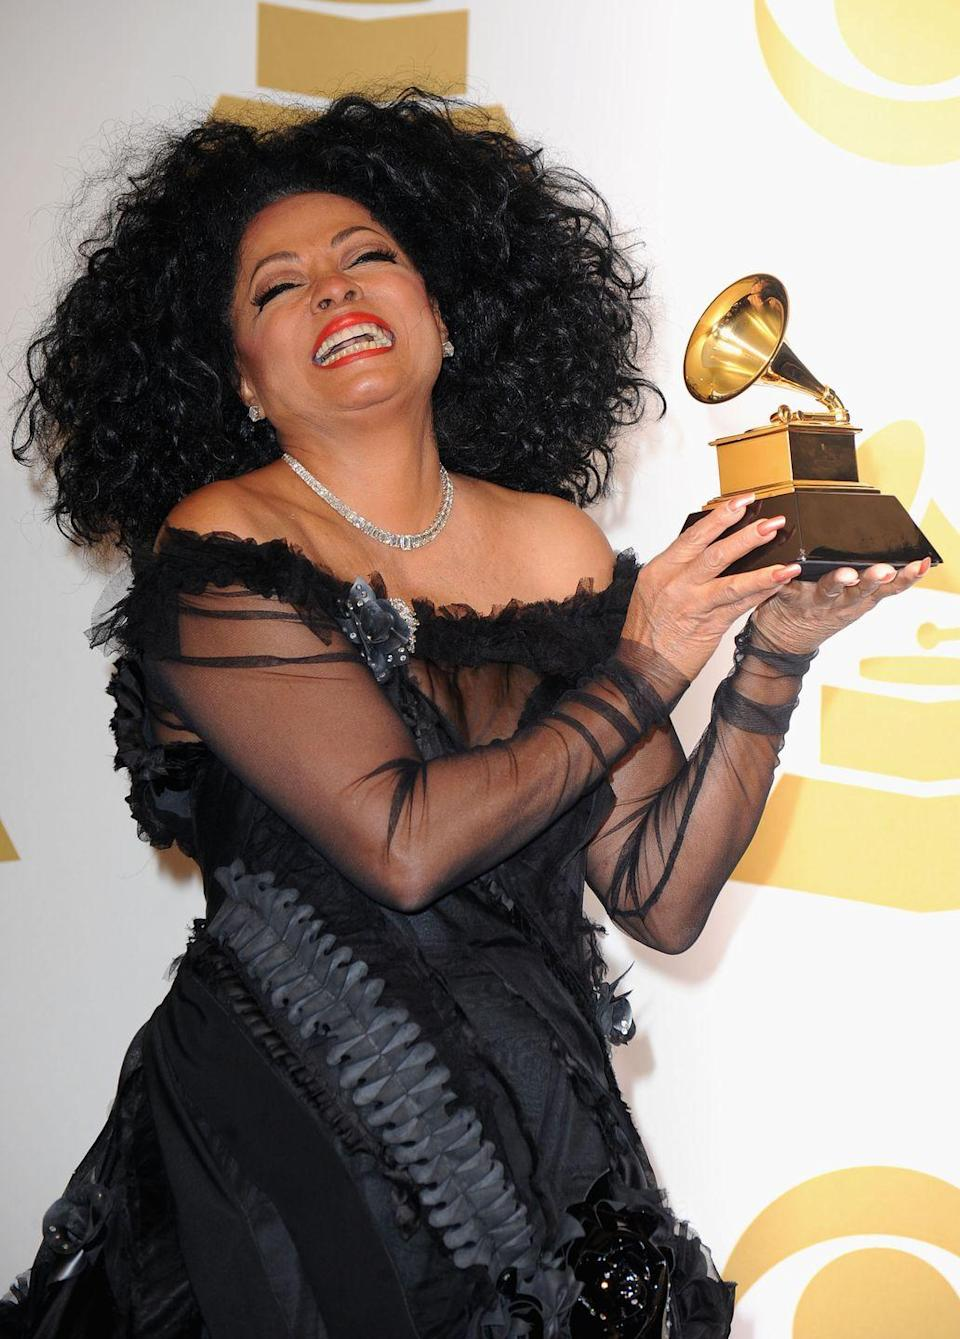 <p>Diana Ross was presented with a Lifetime Achievement Award at the Grammys in 2012. The tribute was Ross's first-ever Grammy, despite being nominated 12 times throughout her incredible career. </p>